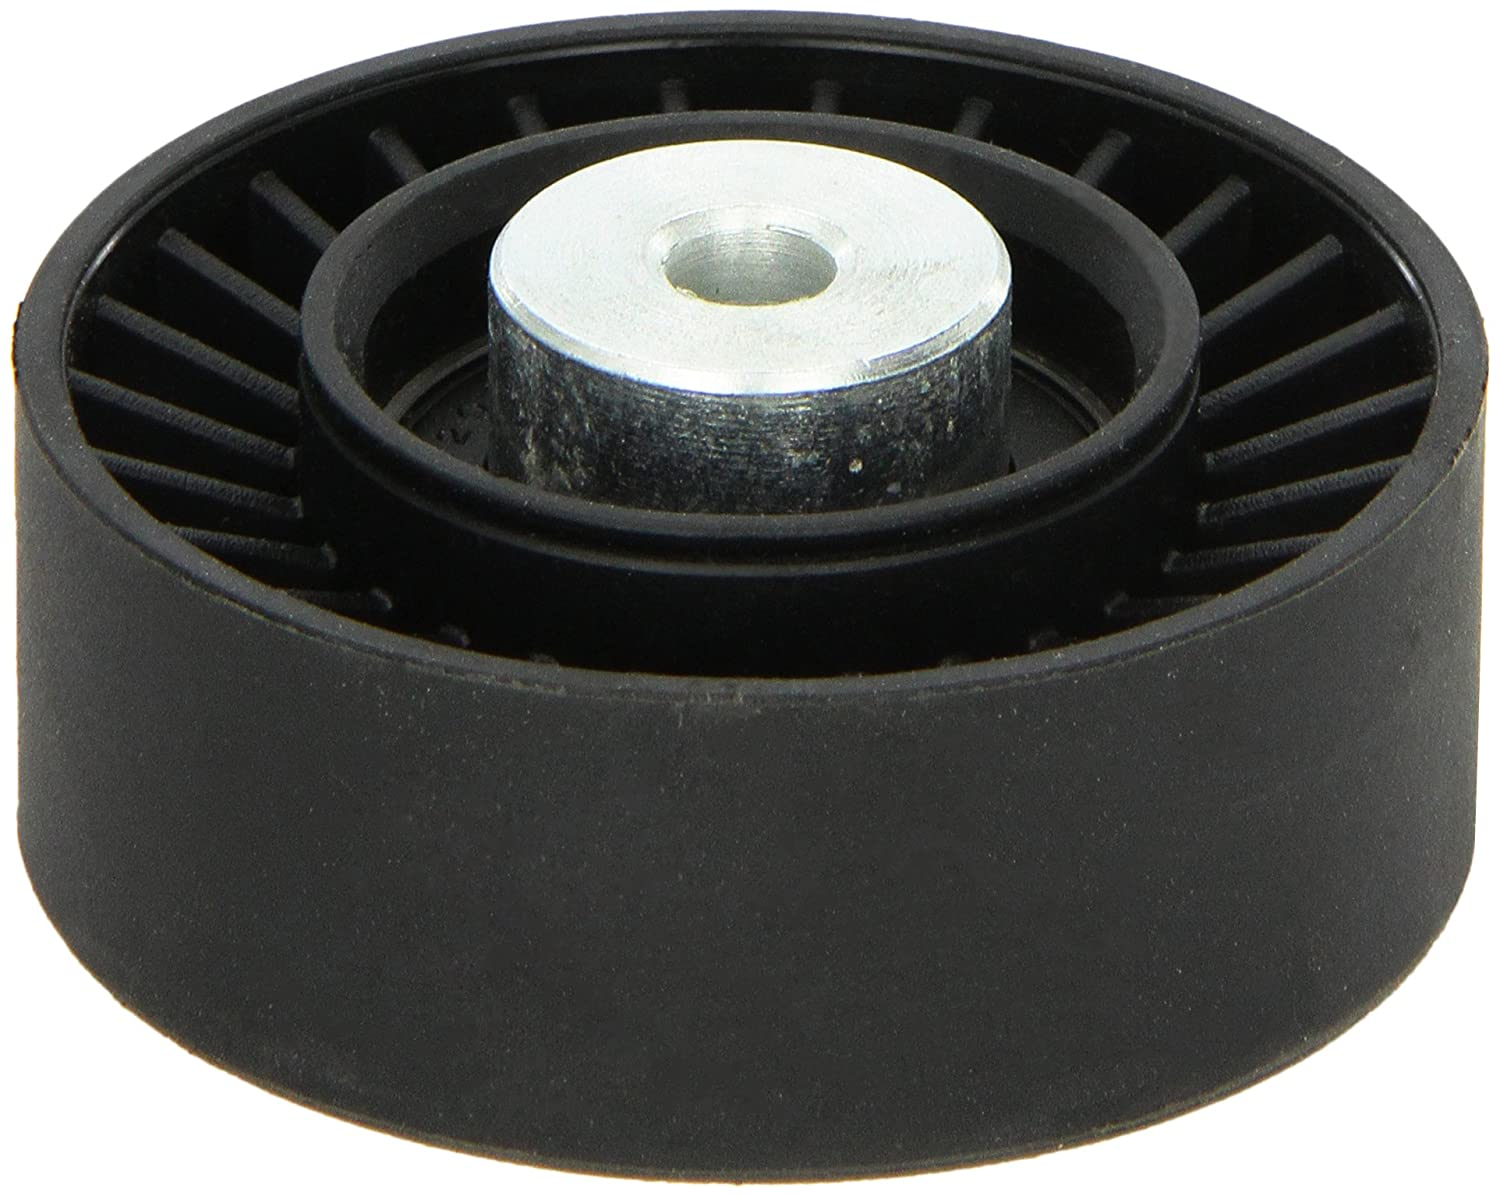 Dayco 89043 Belt Tensioner Pulley